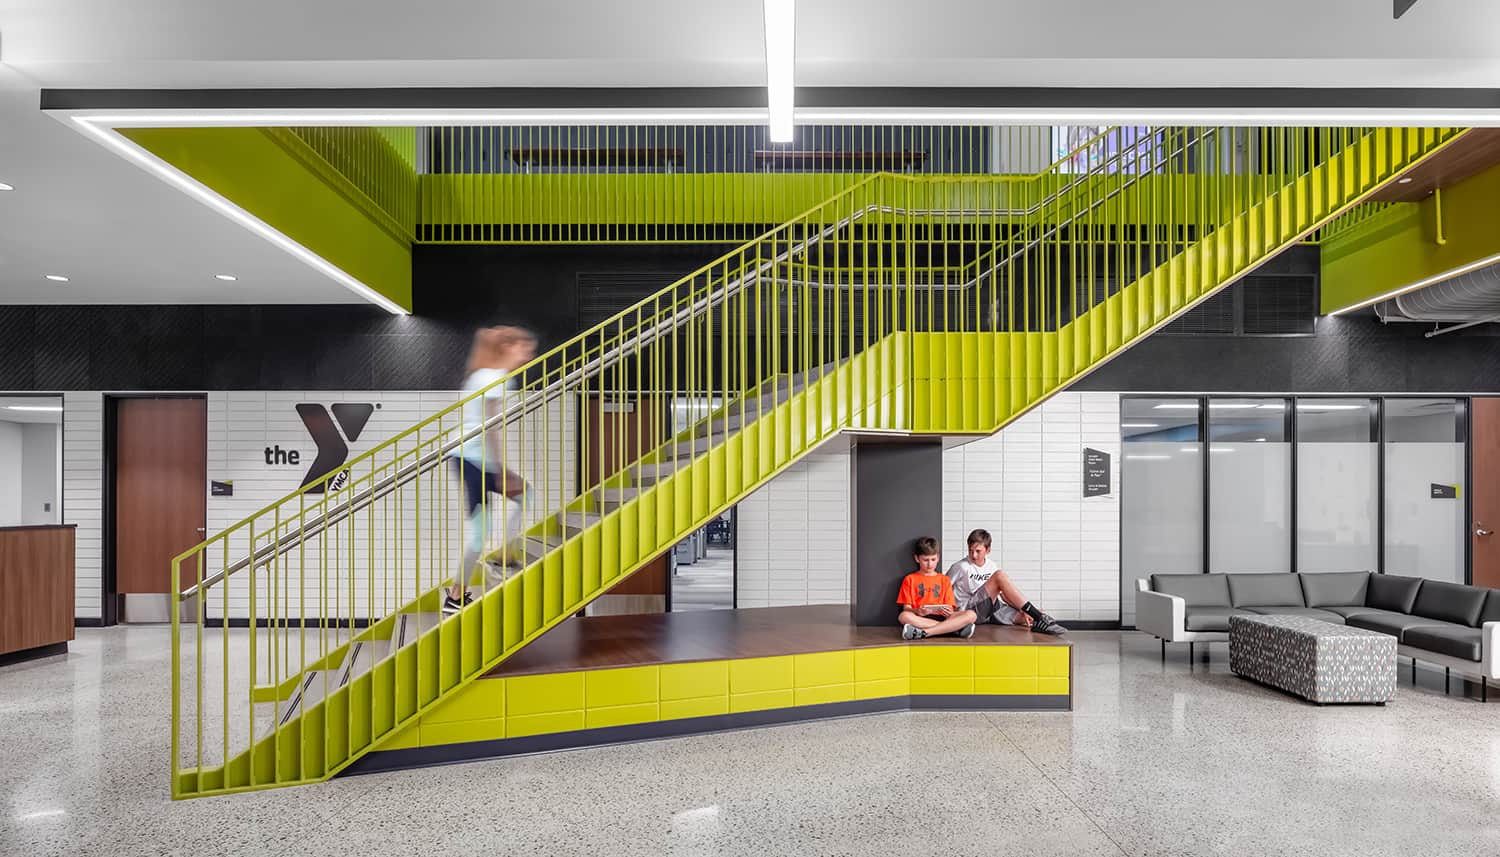 Main green stairwell with seating below.